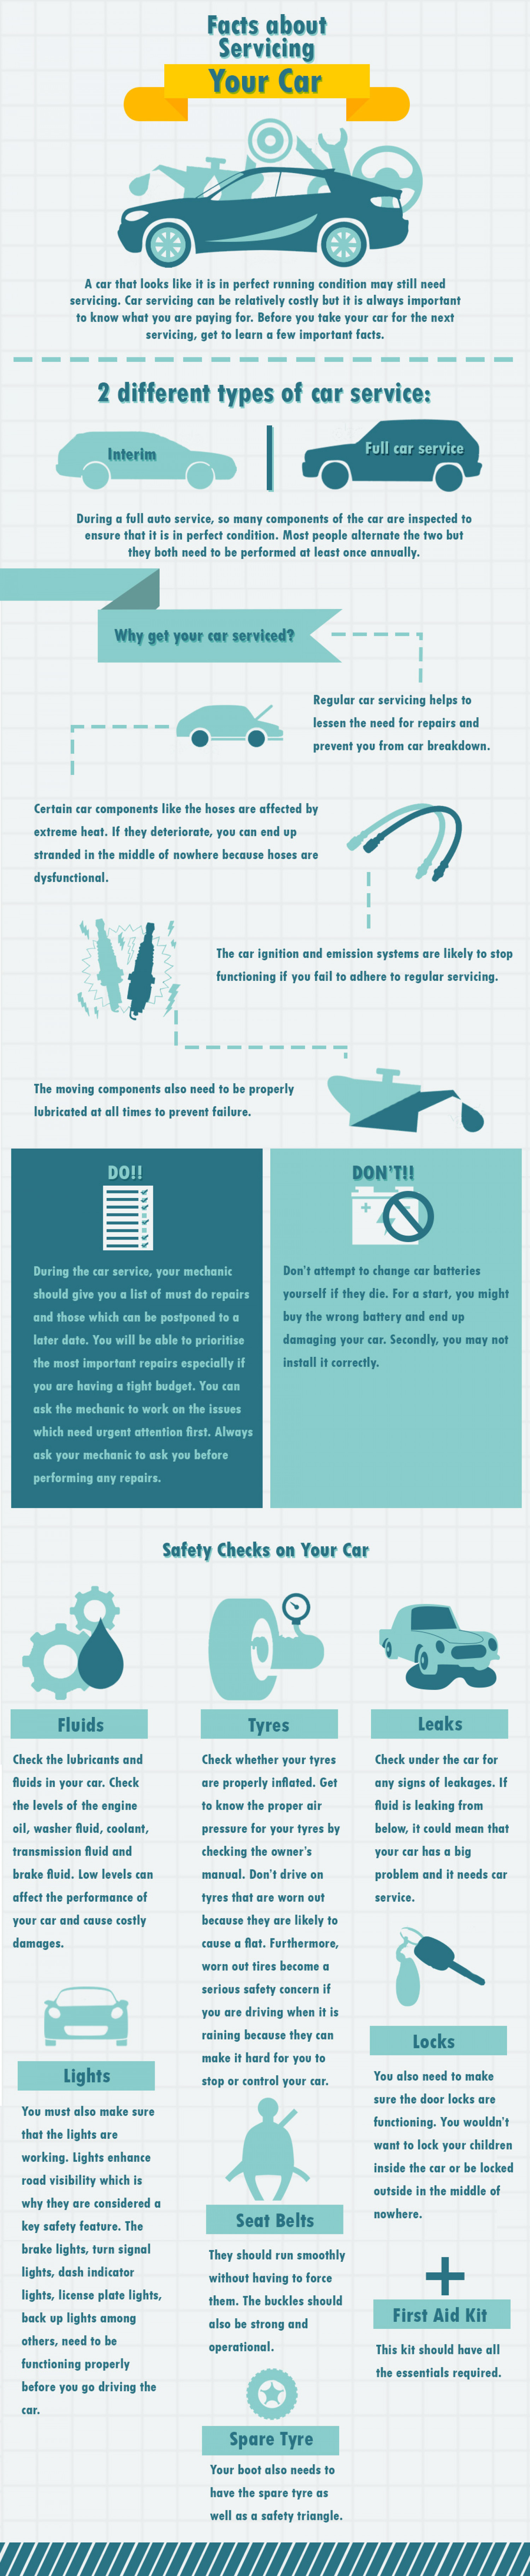 Facts about Servicing Your Car Infographic